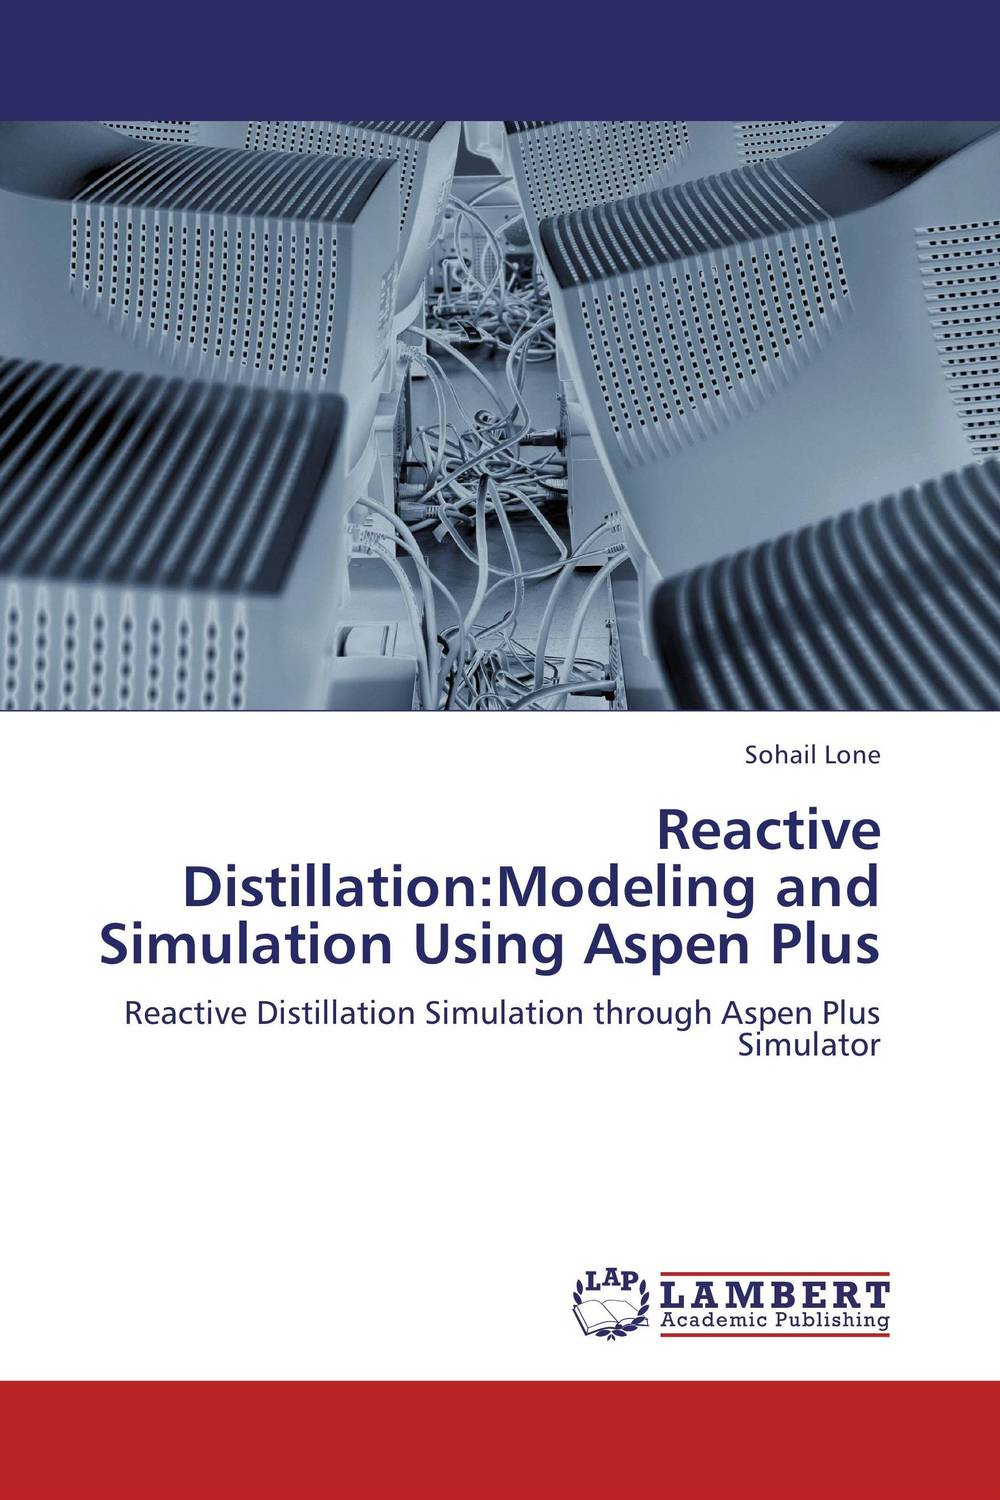 Reactive Distillation:Modeling and Simulation Using Aspen Plus купить